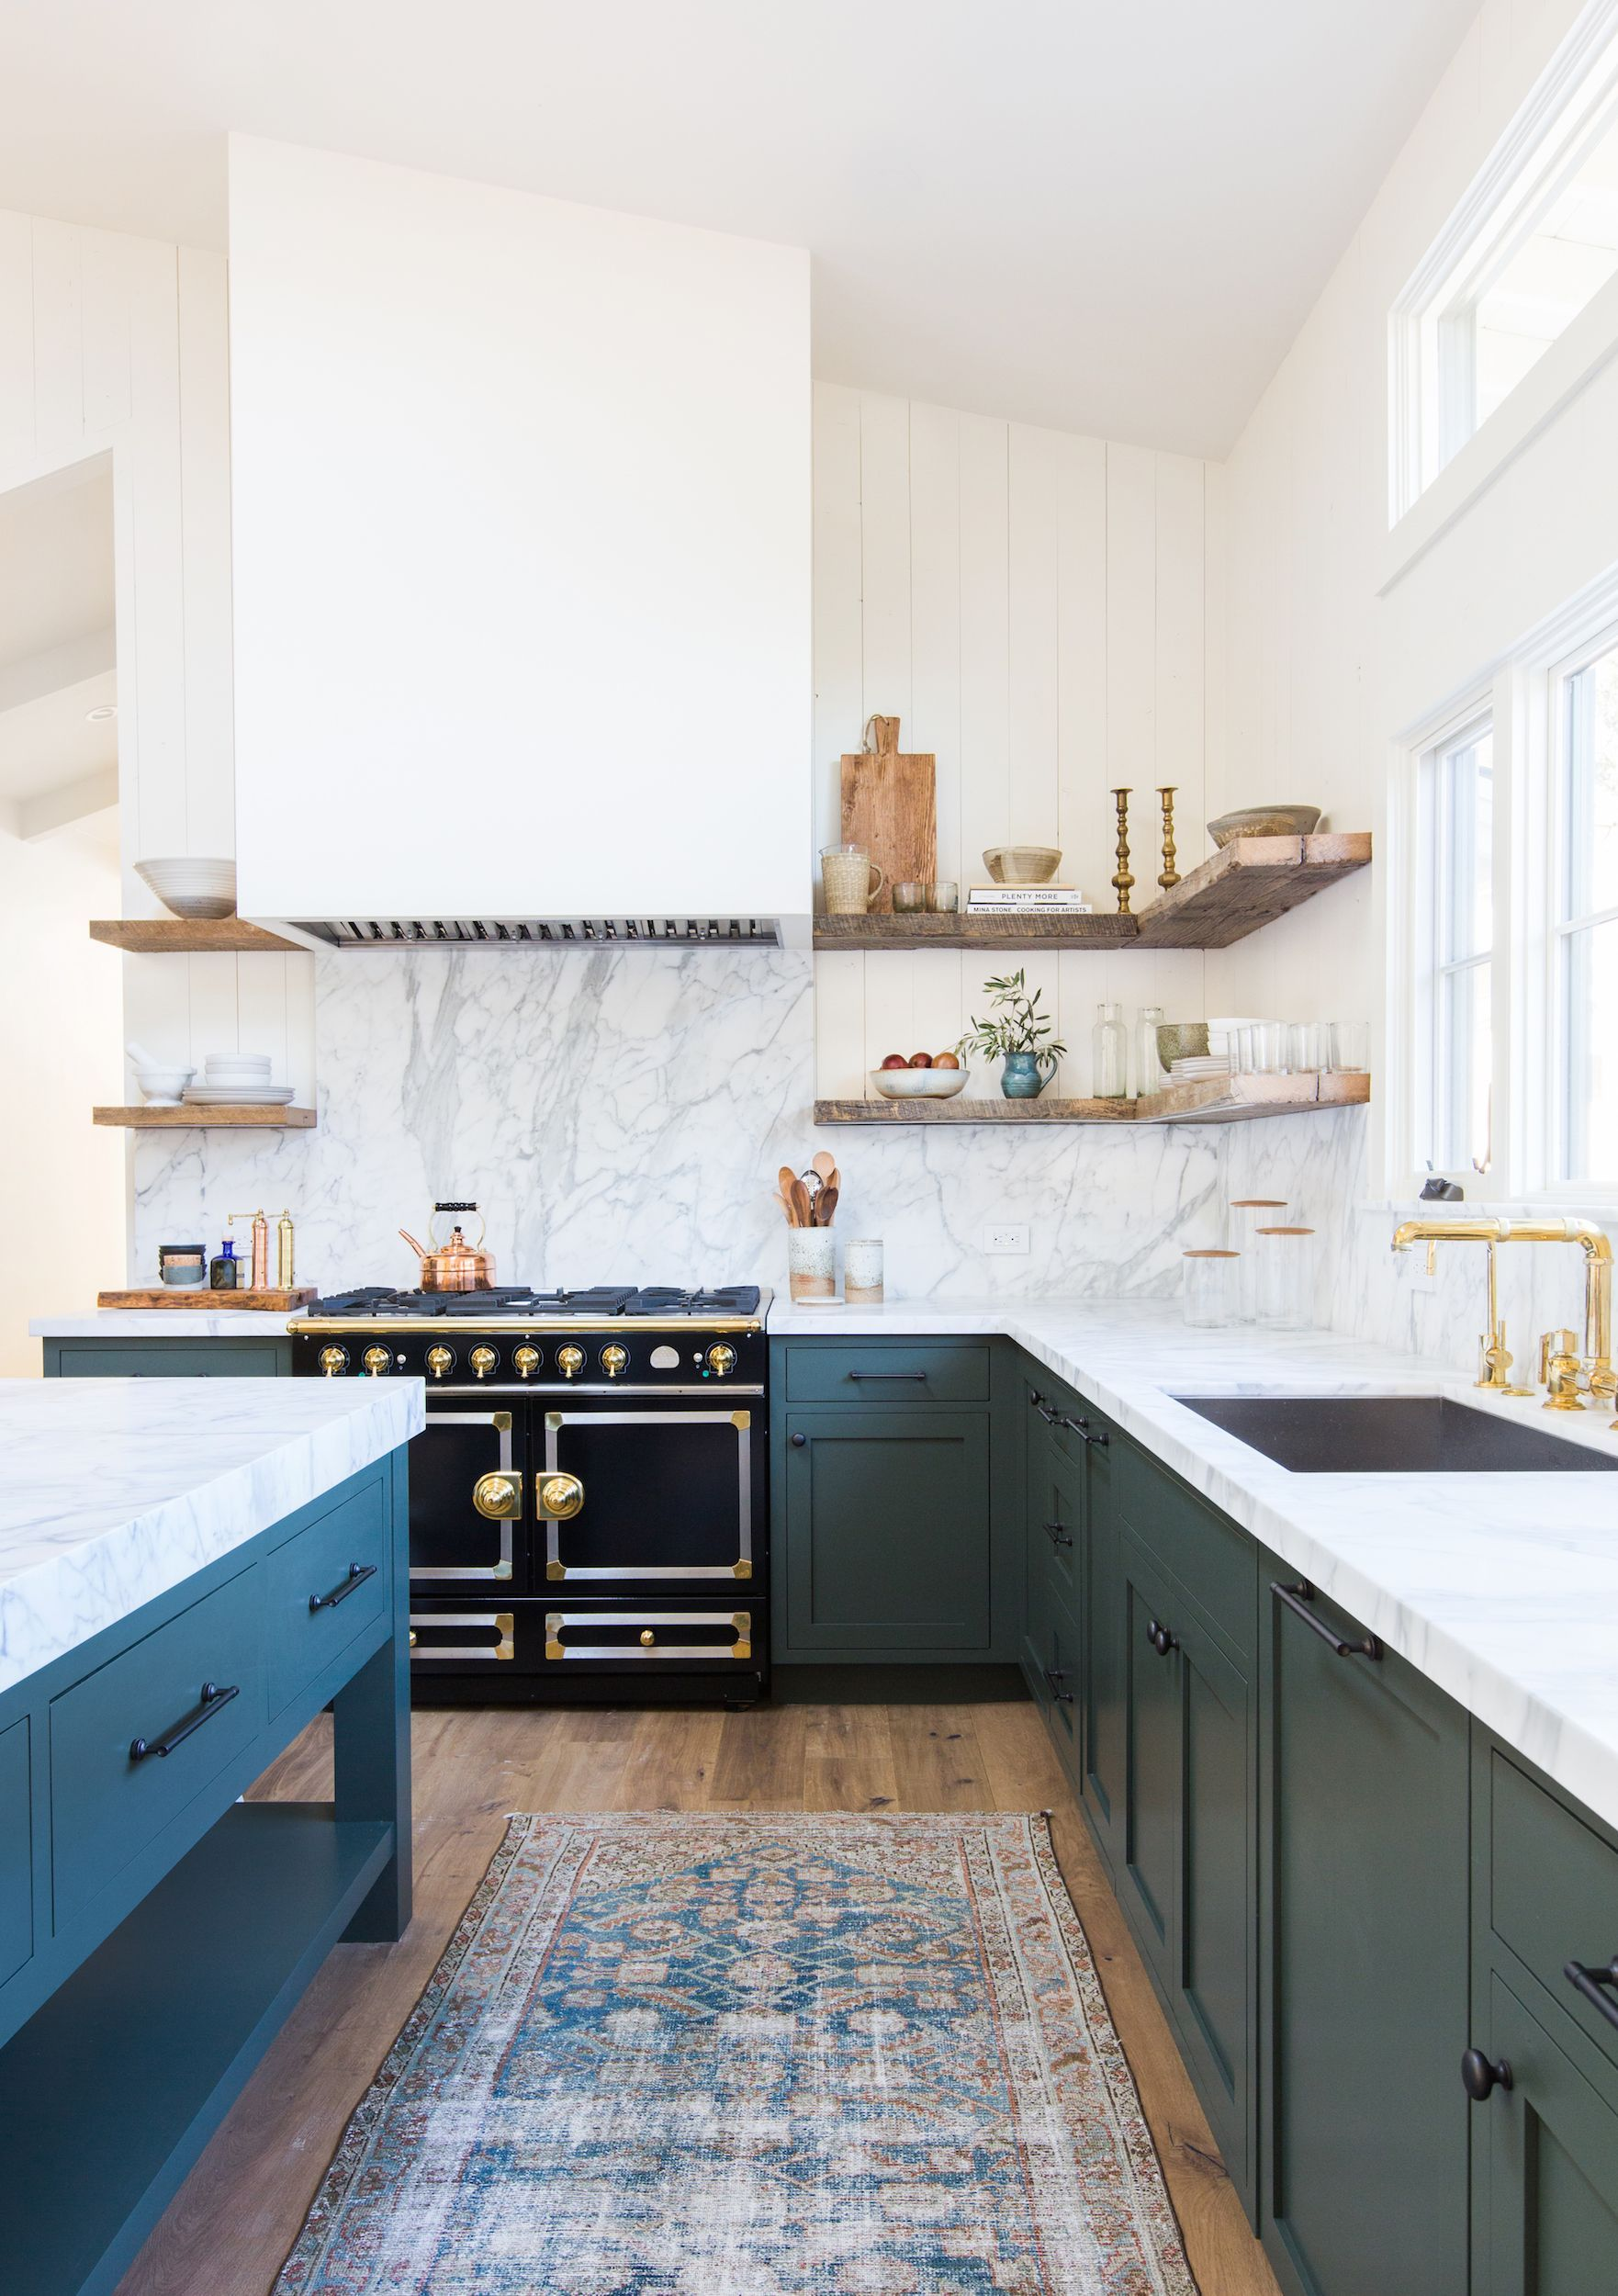 Upper Kitchen Cabinets With Drawers 2020 In 2020 Kitchen Renovation Kitchen Cabinet Design Kitchen Trends